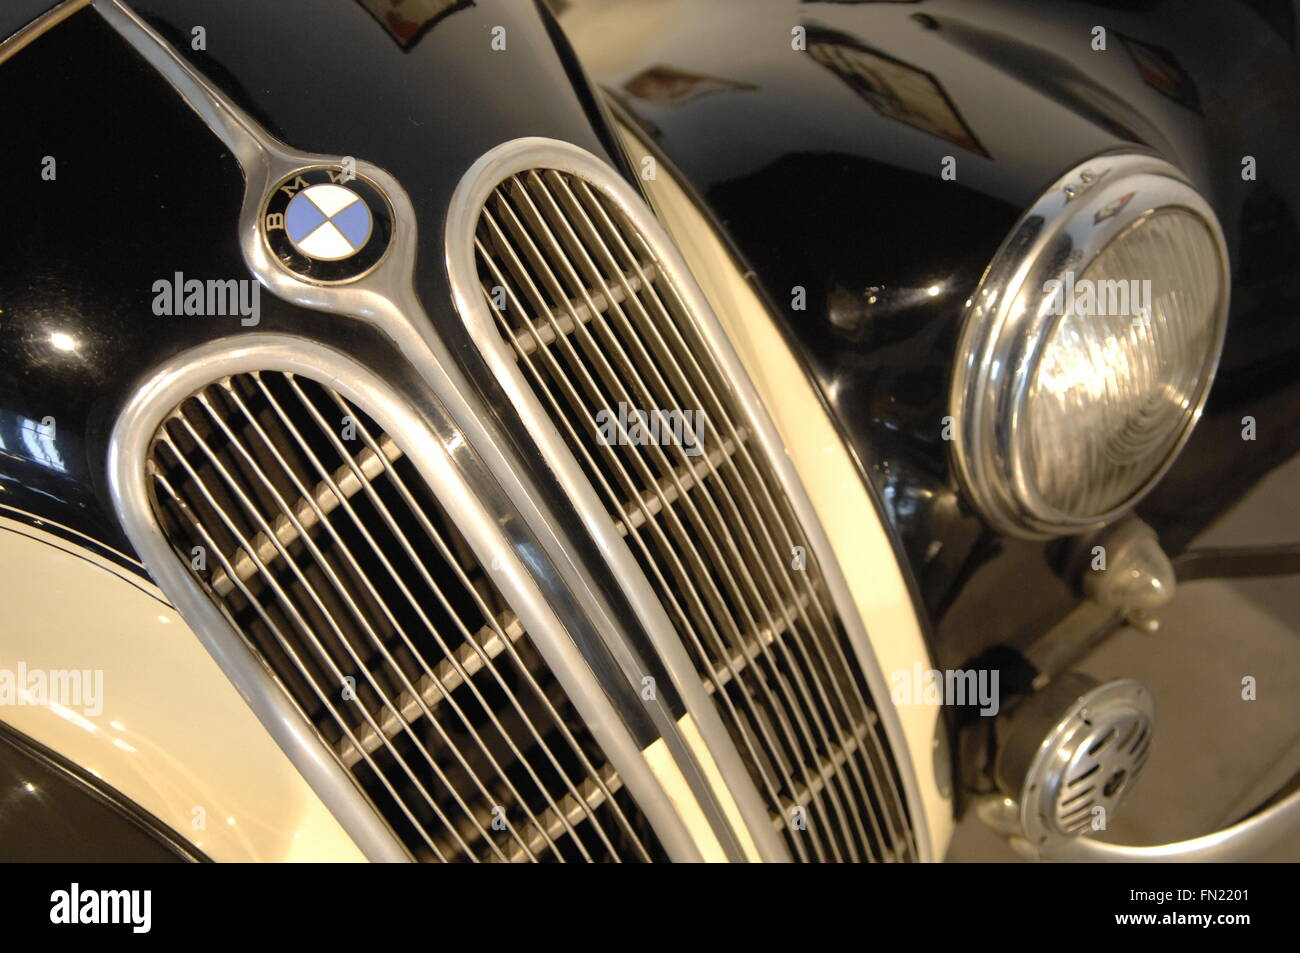 A close up of the BMW 1938 German Sportscar of the 30s Stock